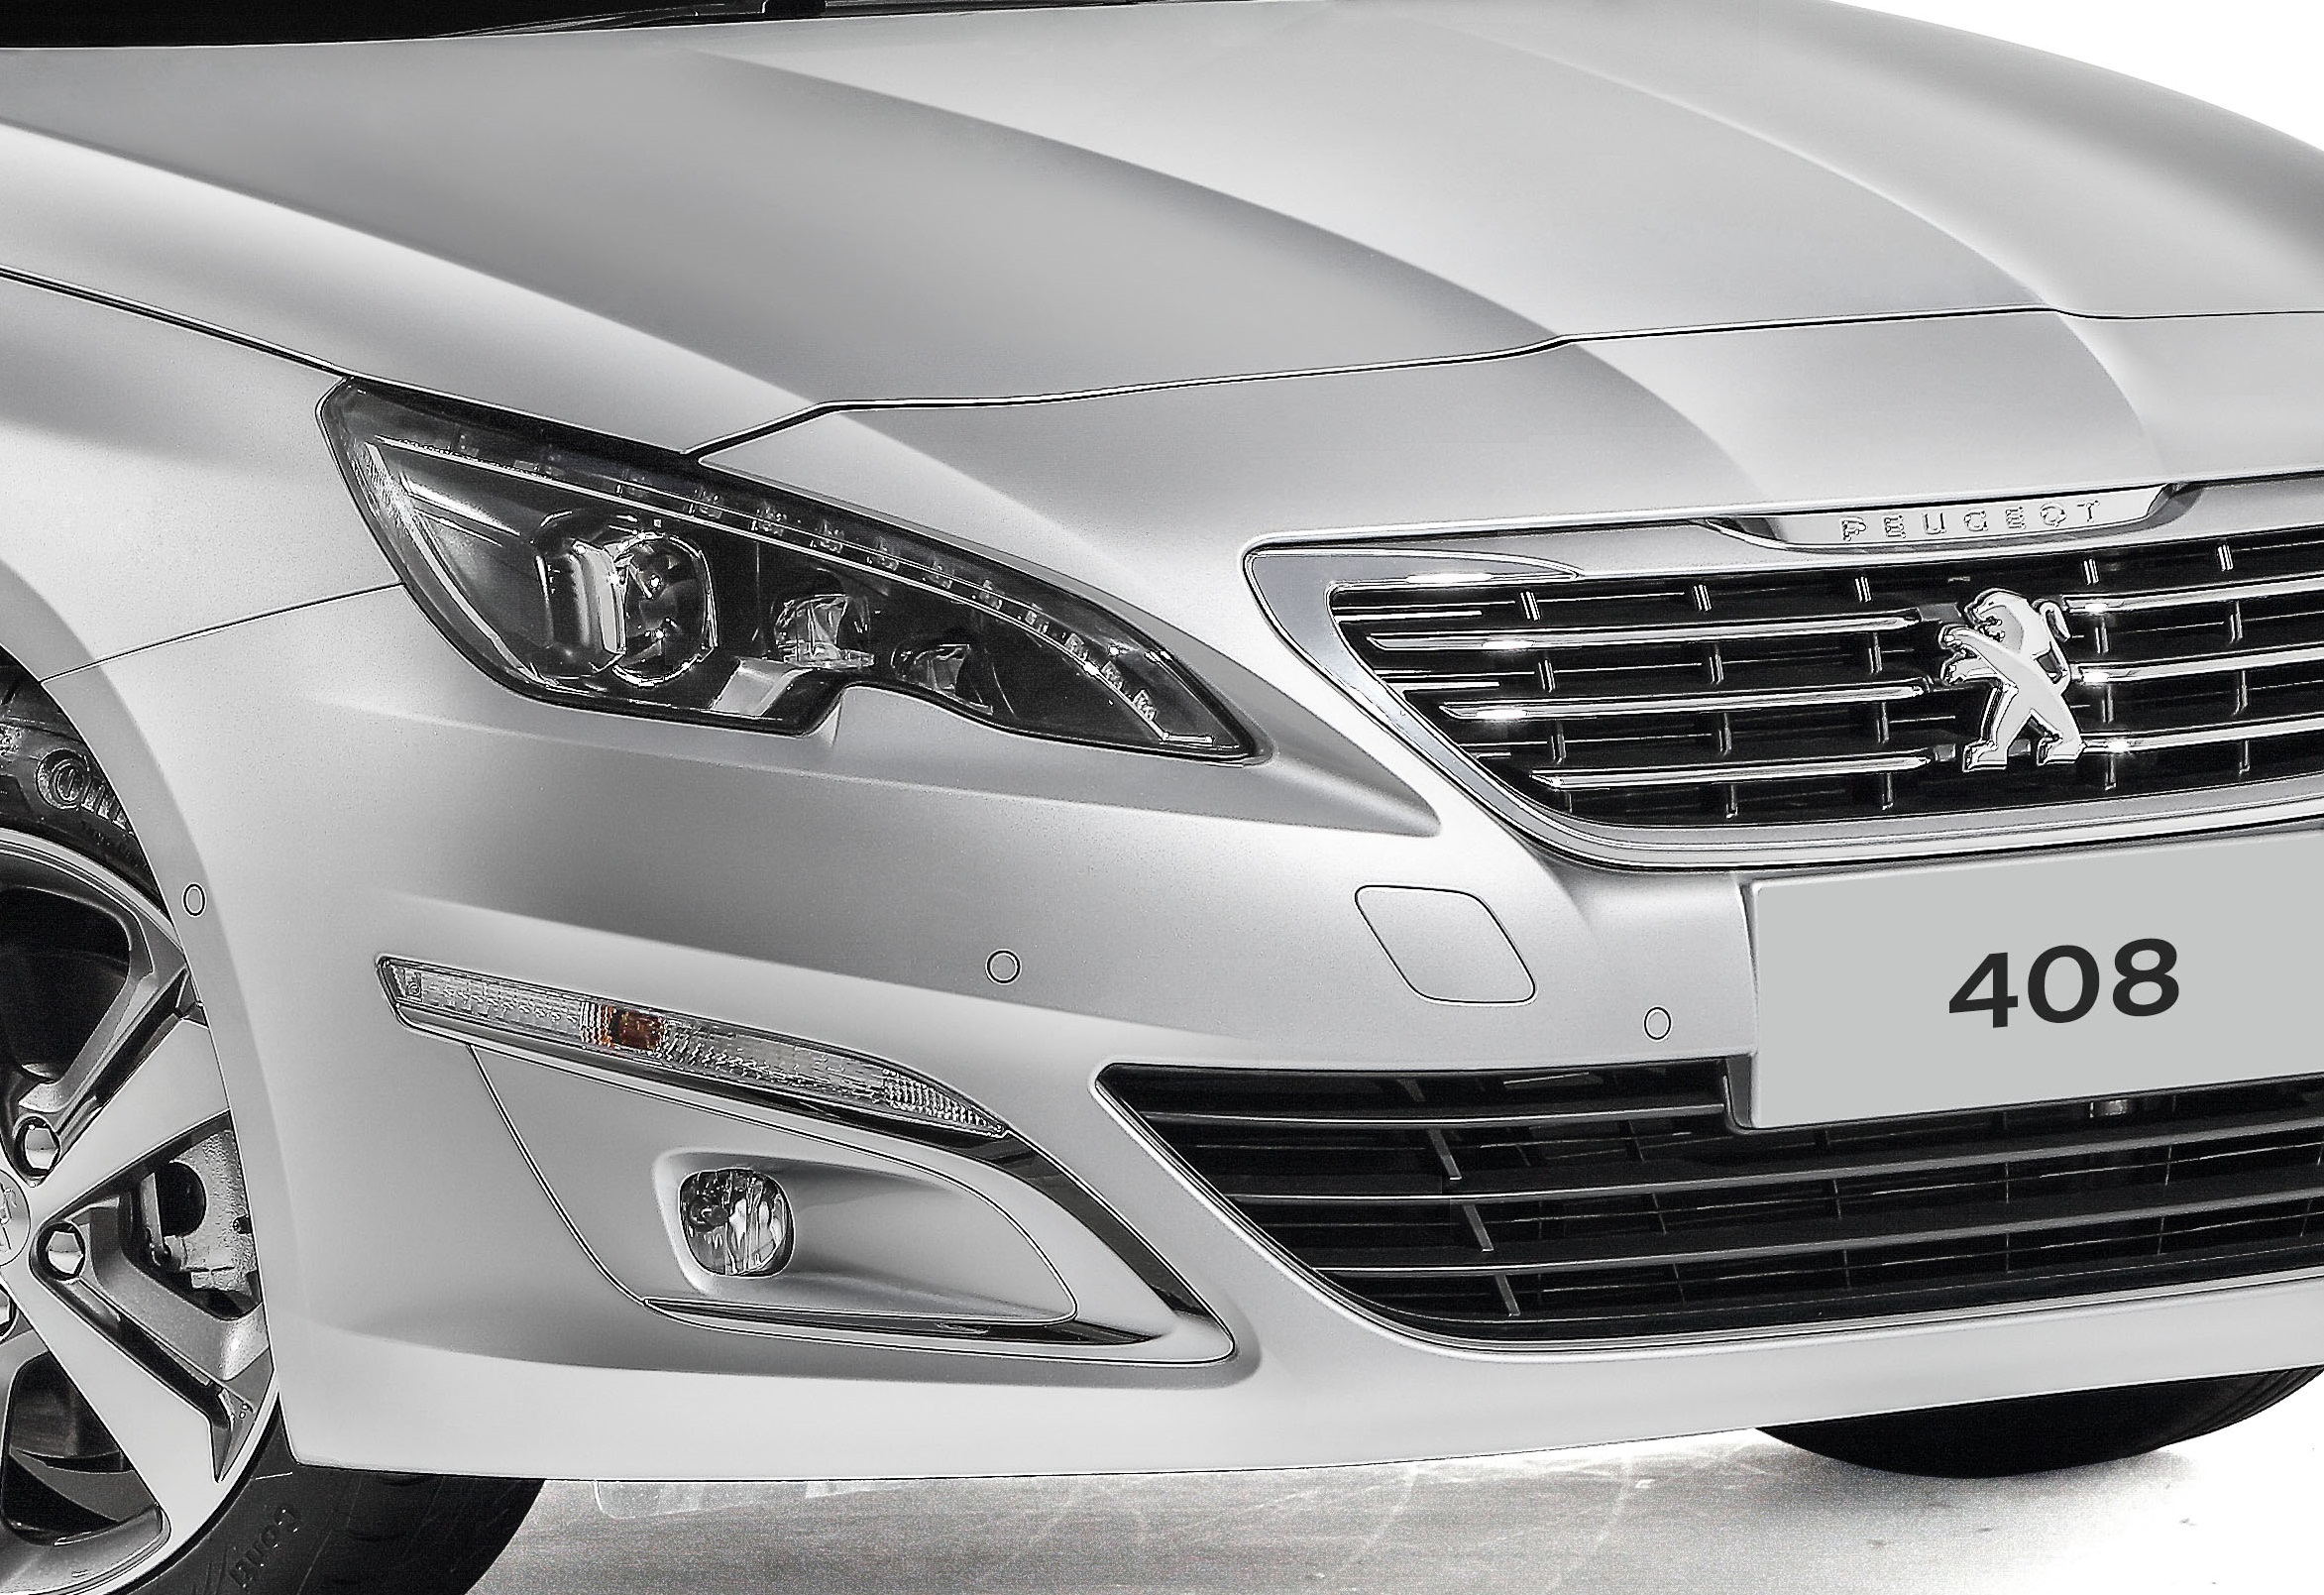 Peugeot 408 front view